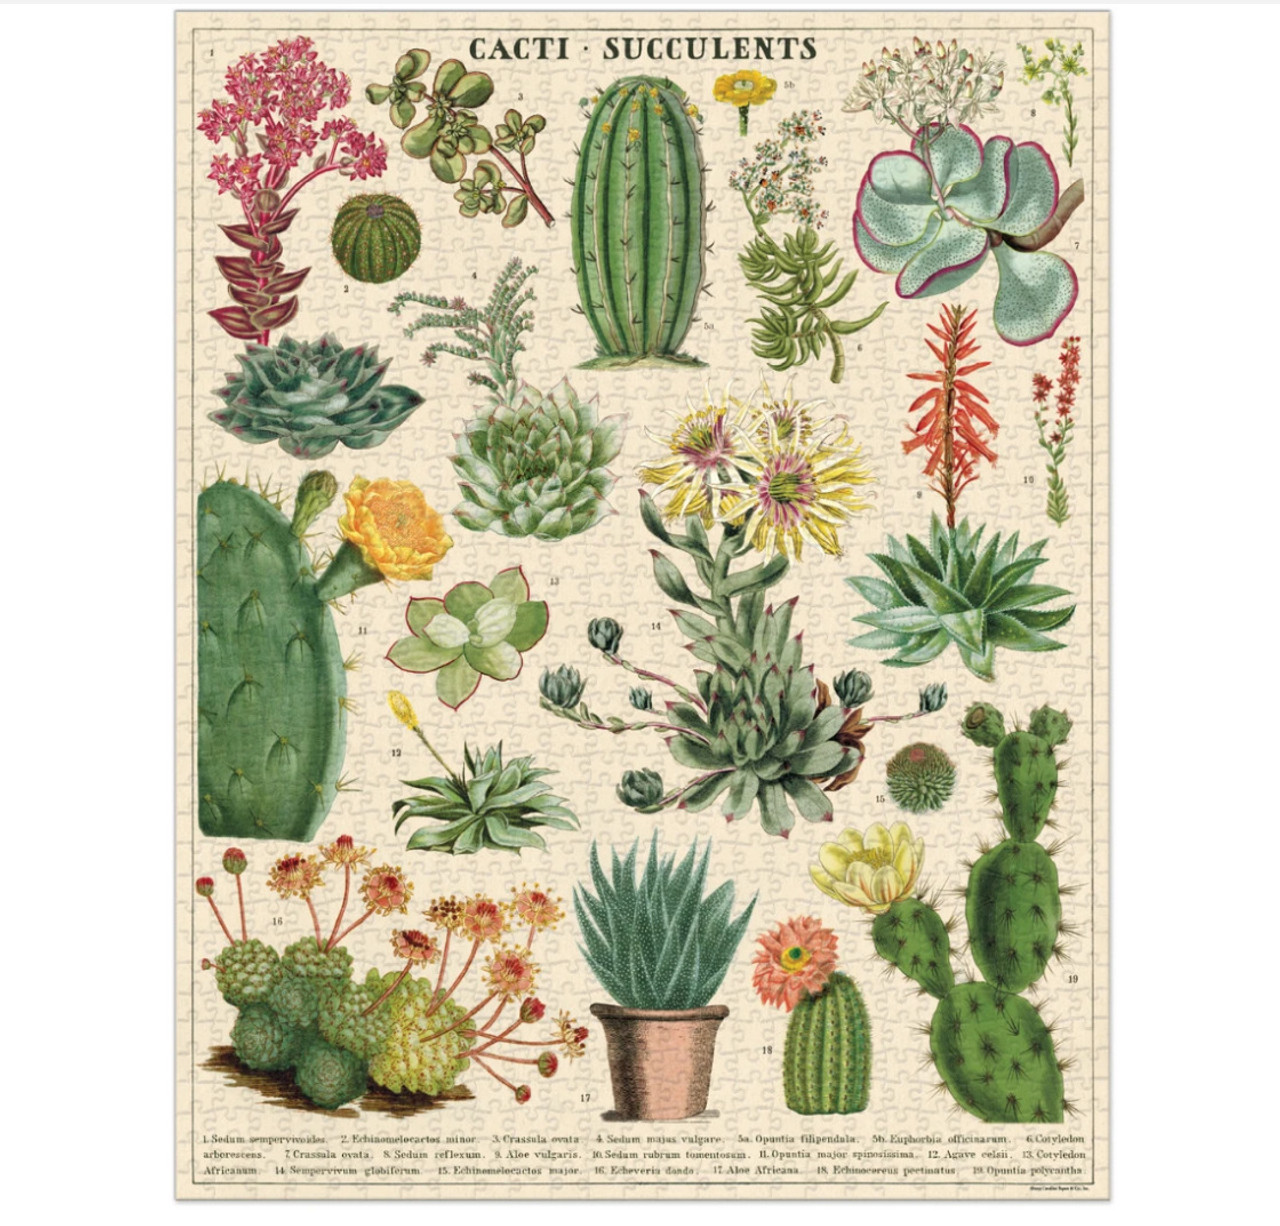 1000 Piece Cacti and Succulents Jigsaw Puzzle - A